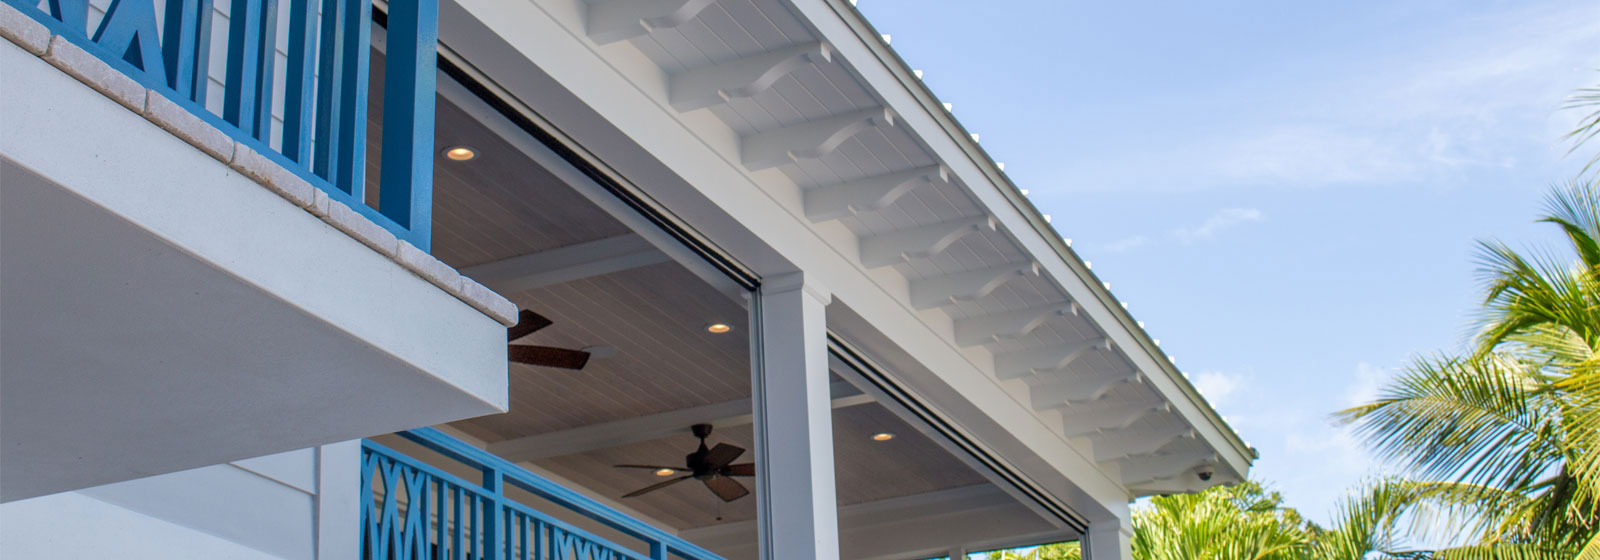 PVC Rafter Tails